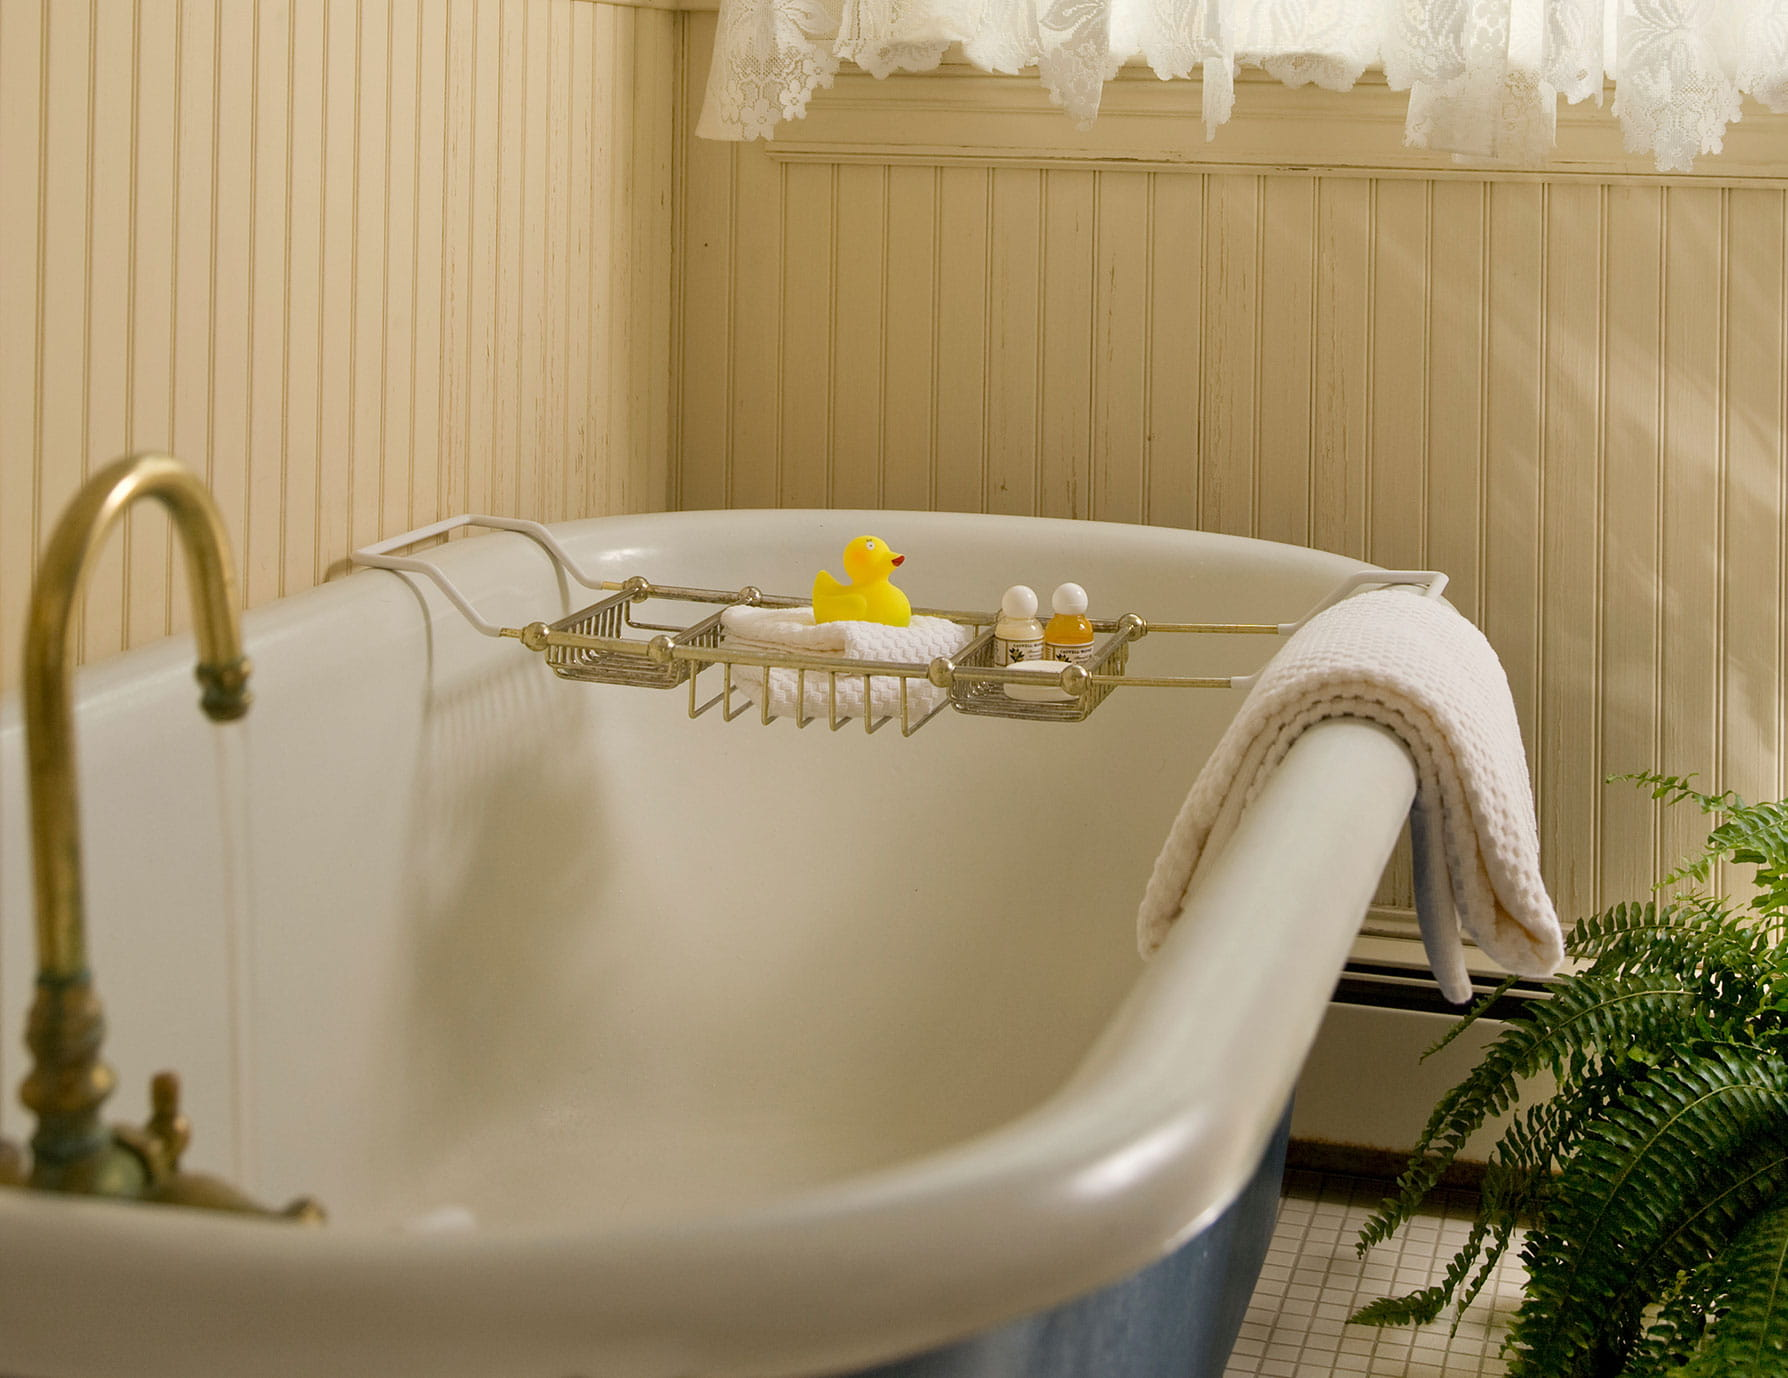 Warm bathtub with small supplies tray